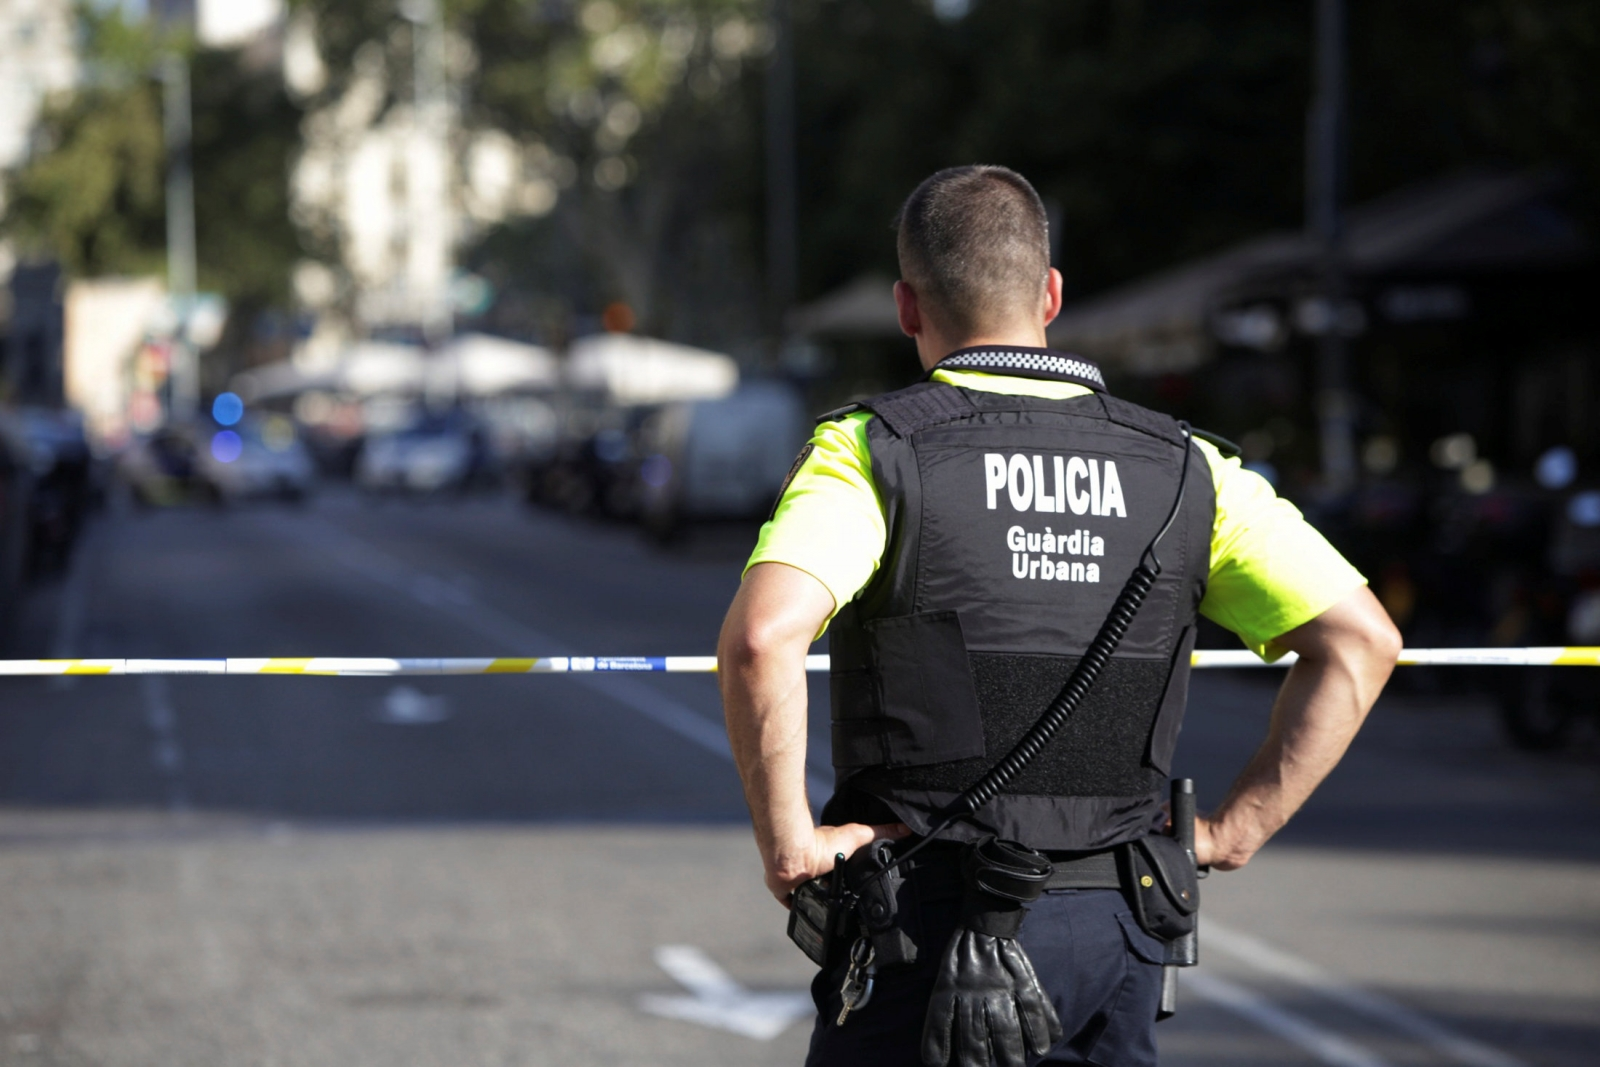 witness-describes-panic-on-barcelonas-las-ramblas-as-police-close-area